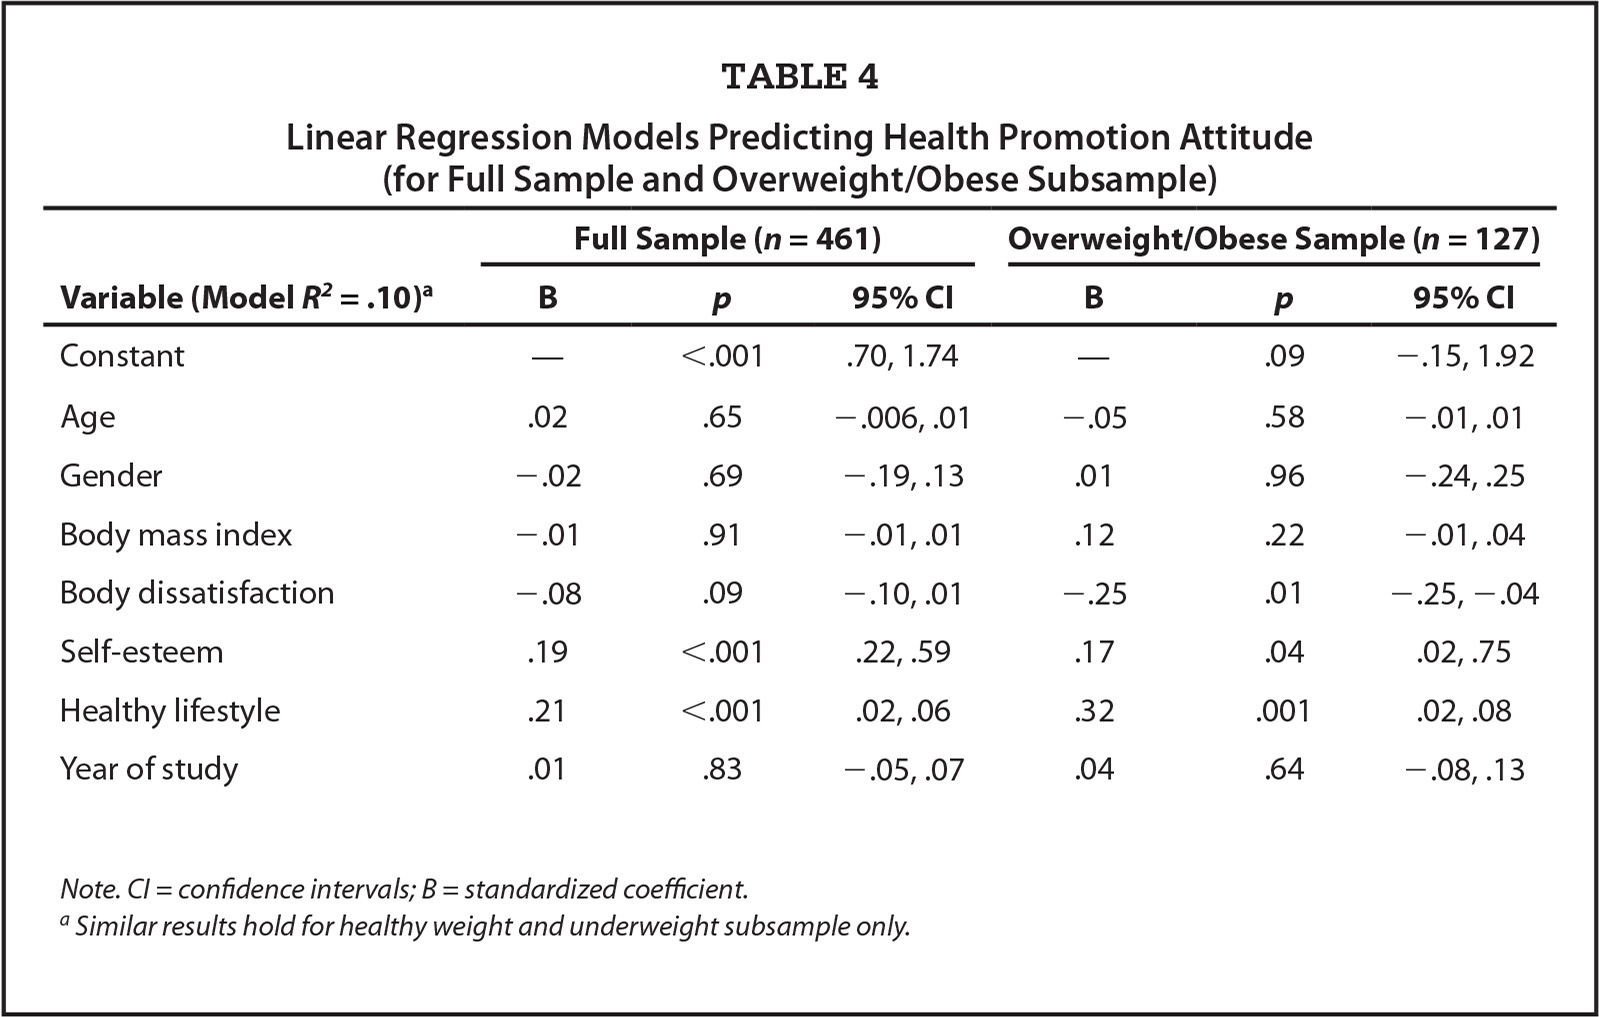 Linear Regression Models Predicting Health Promotion Attitude (for Full Sample and Overweight/Obese Subsample)